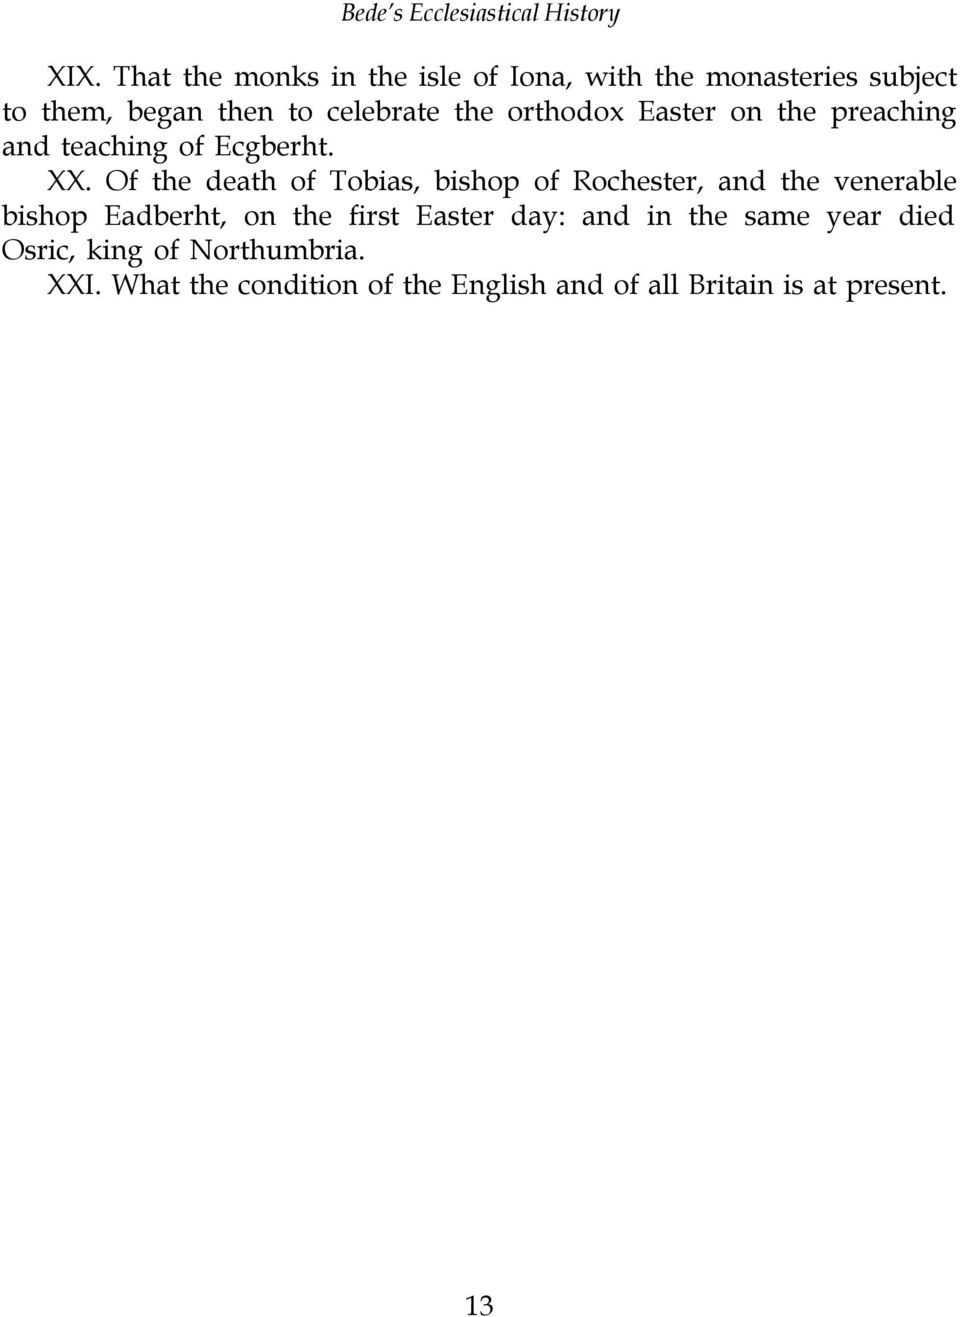 Of the death of Tobias, bishop of Rochester, and the venerable bishop Eadberht, on the first Easter